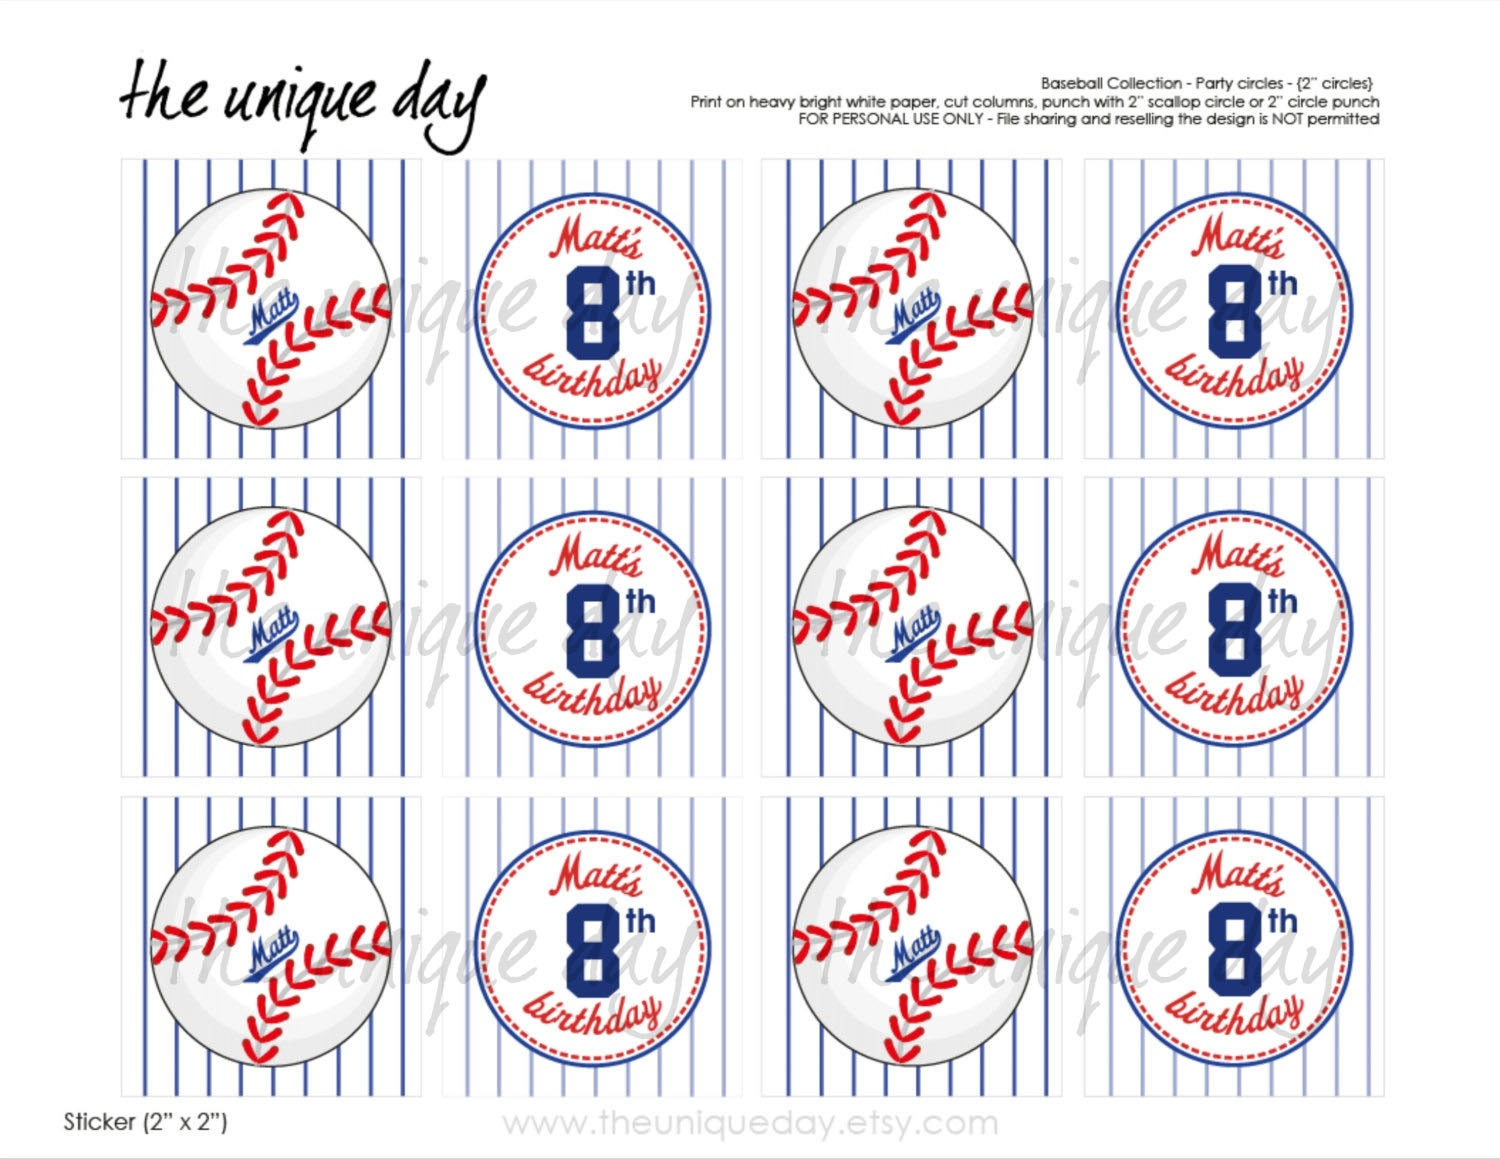 photograph about Free Printable Baseball Tags called 14 No cost PRINTABLE BASEBALL Bash Choose TAGS, TAGS Absolutely free Occasion